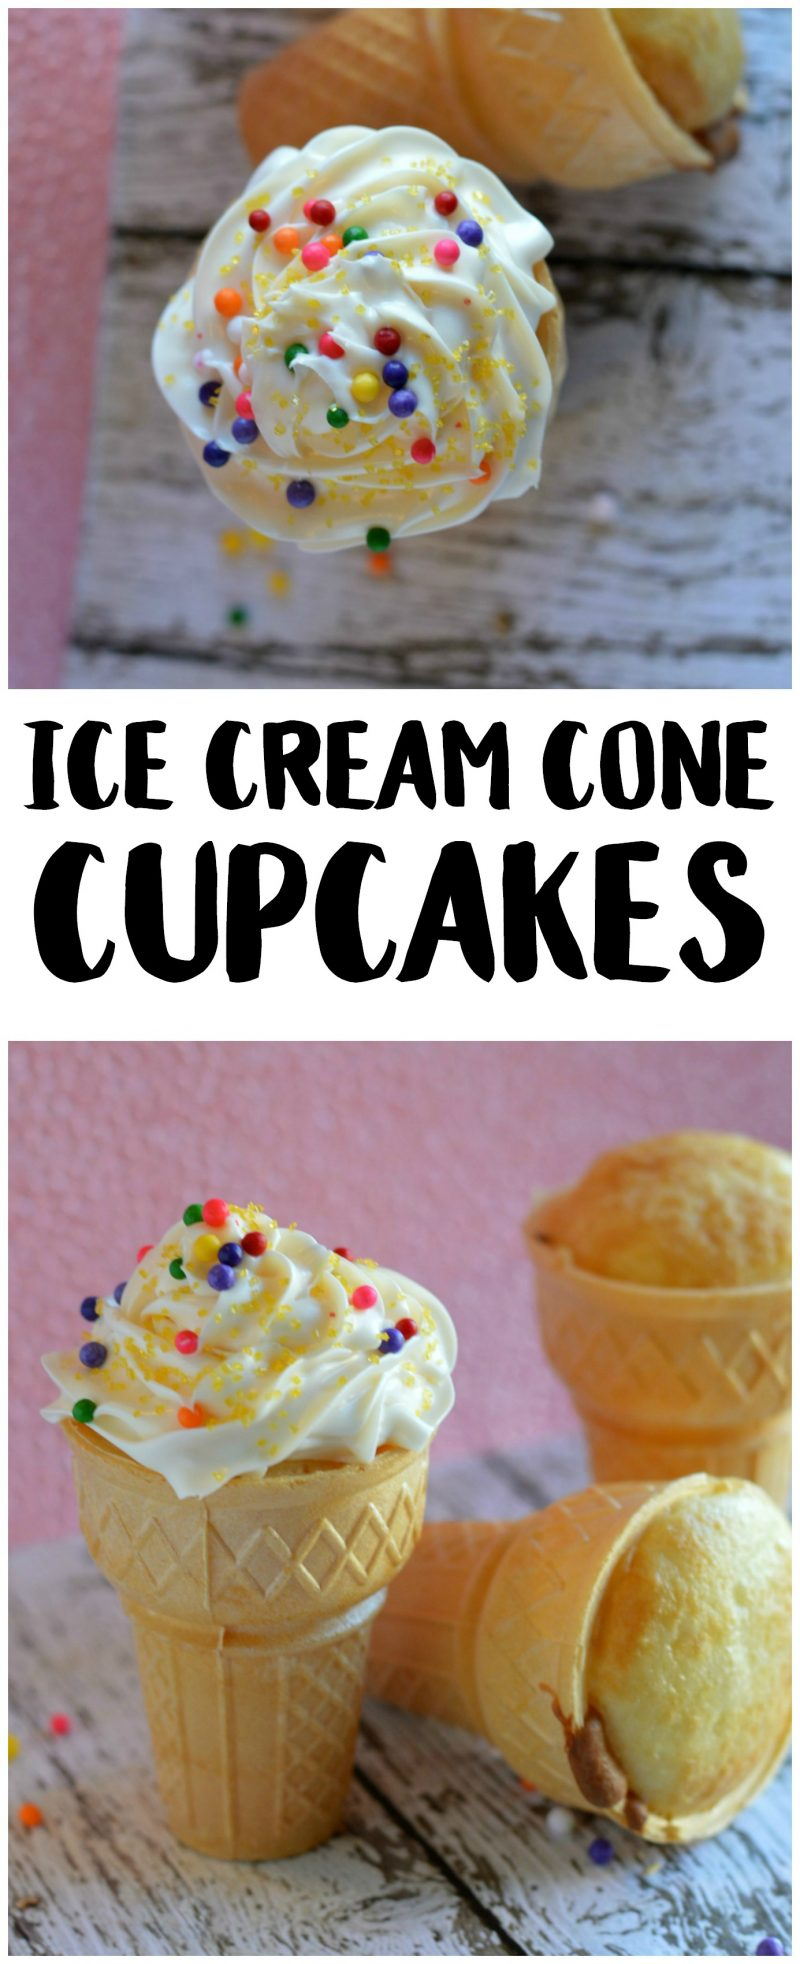 Whether they are vanilla or chocolate or something more creative, homemade cupcakes are so delicious and easy. But they can get messy too, especially at kid parties! These cute Ice Cream Cone Cupcakes are baked right in the cone so they have their own holder, eliminating the mess! Learn how to make these creative birthday cupcakes with this easy recipe- and get creative with your decoration ideas!